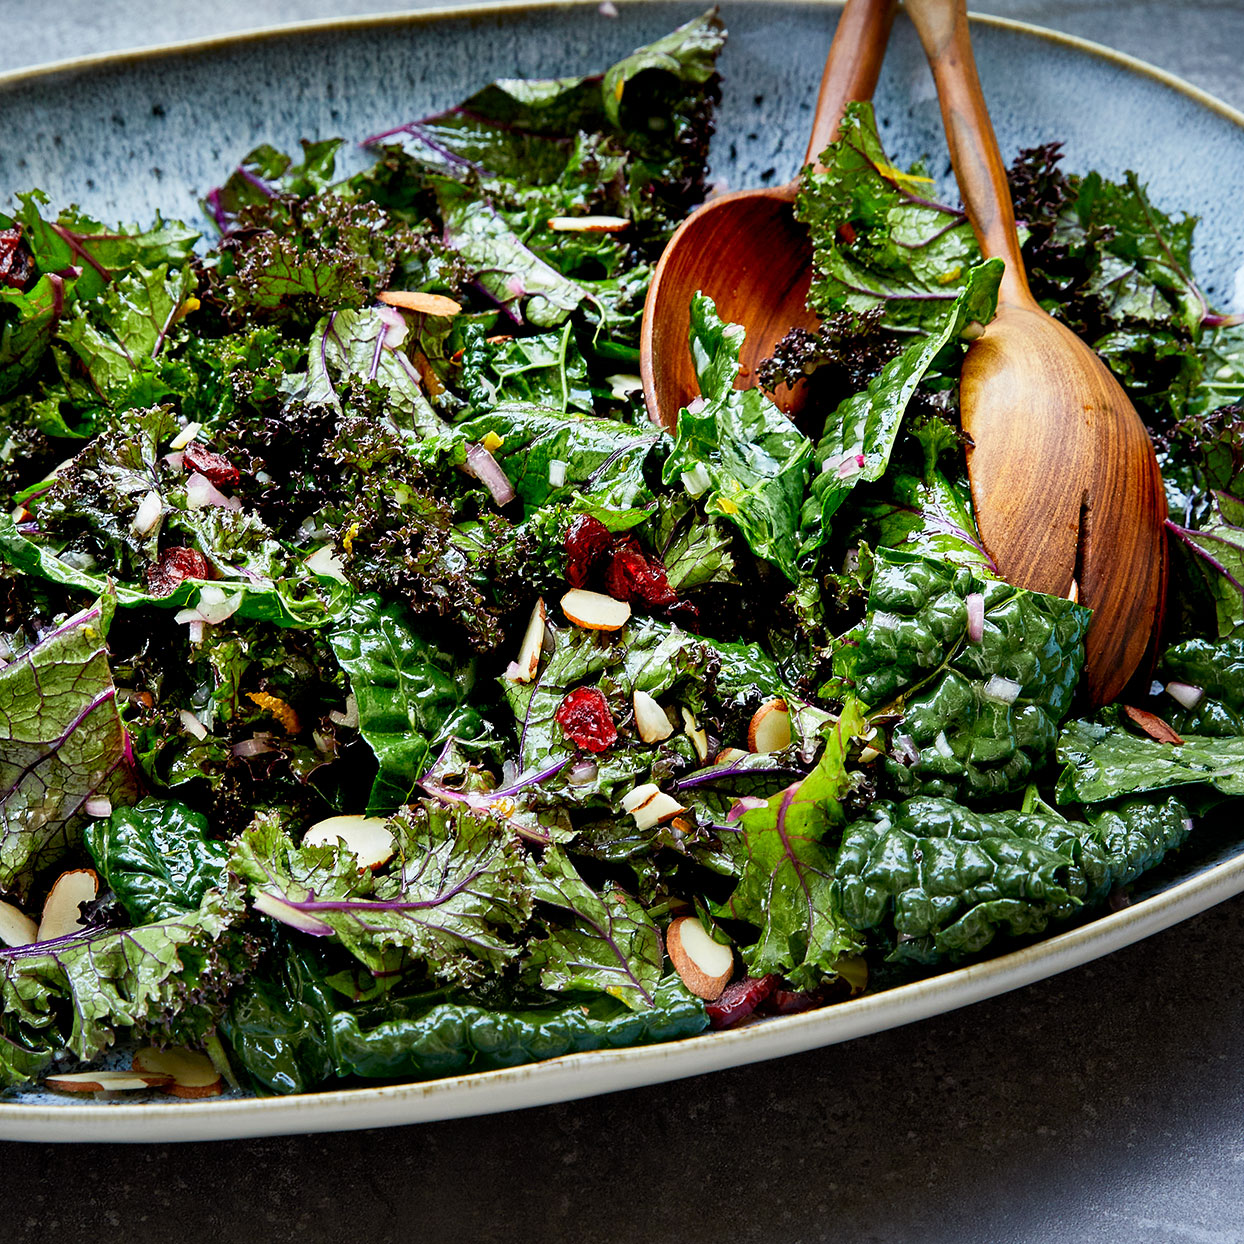 Kale Salad with Cranberries Allrecipes Trusted Brands